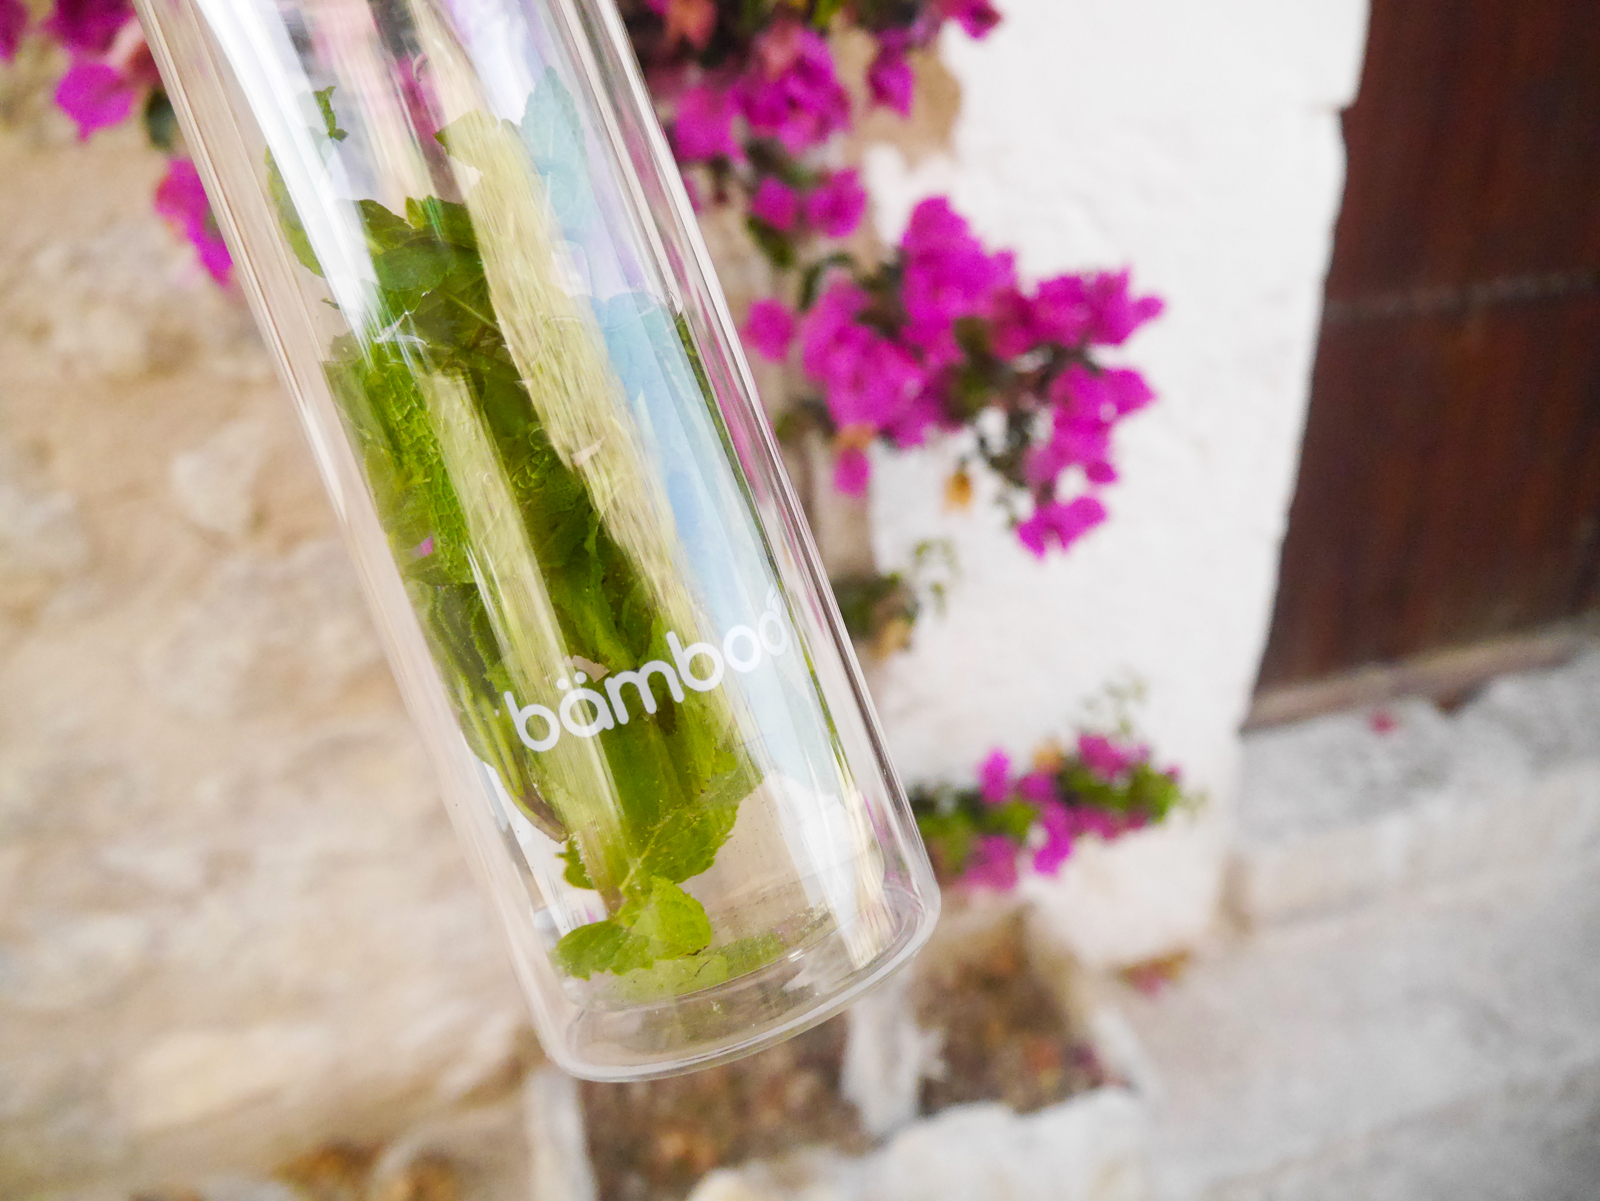 Infusion Bottle von bämboo - Teeflasche, Thermosflasche, Glasflasche, Infused Water, Smoothie, Tee